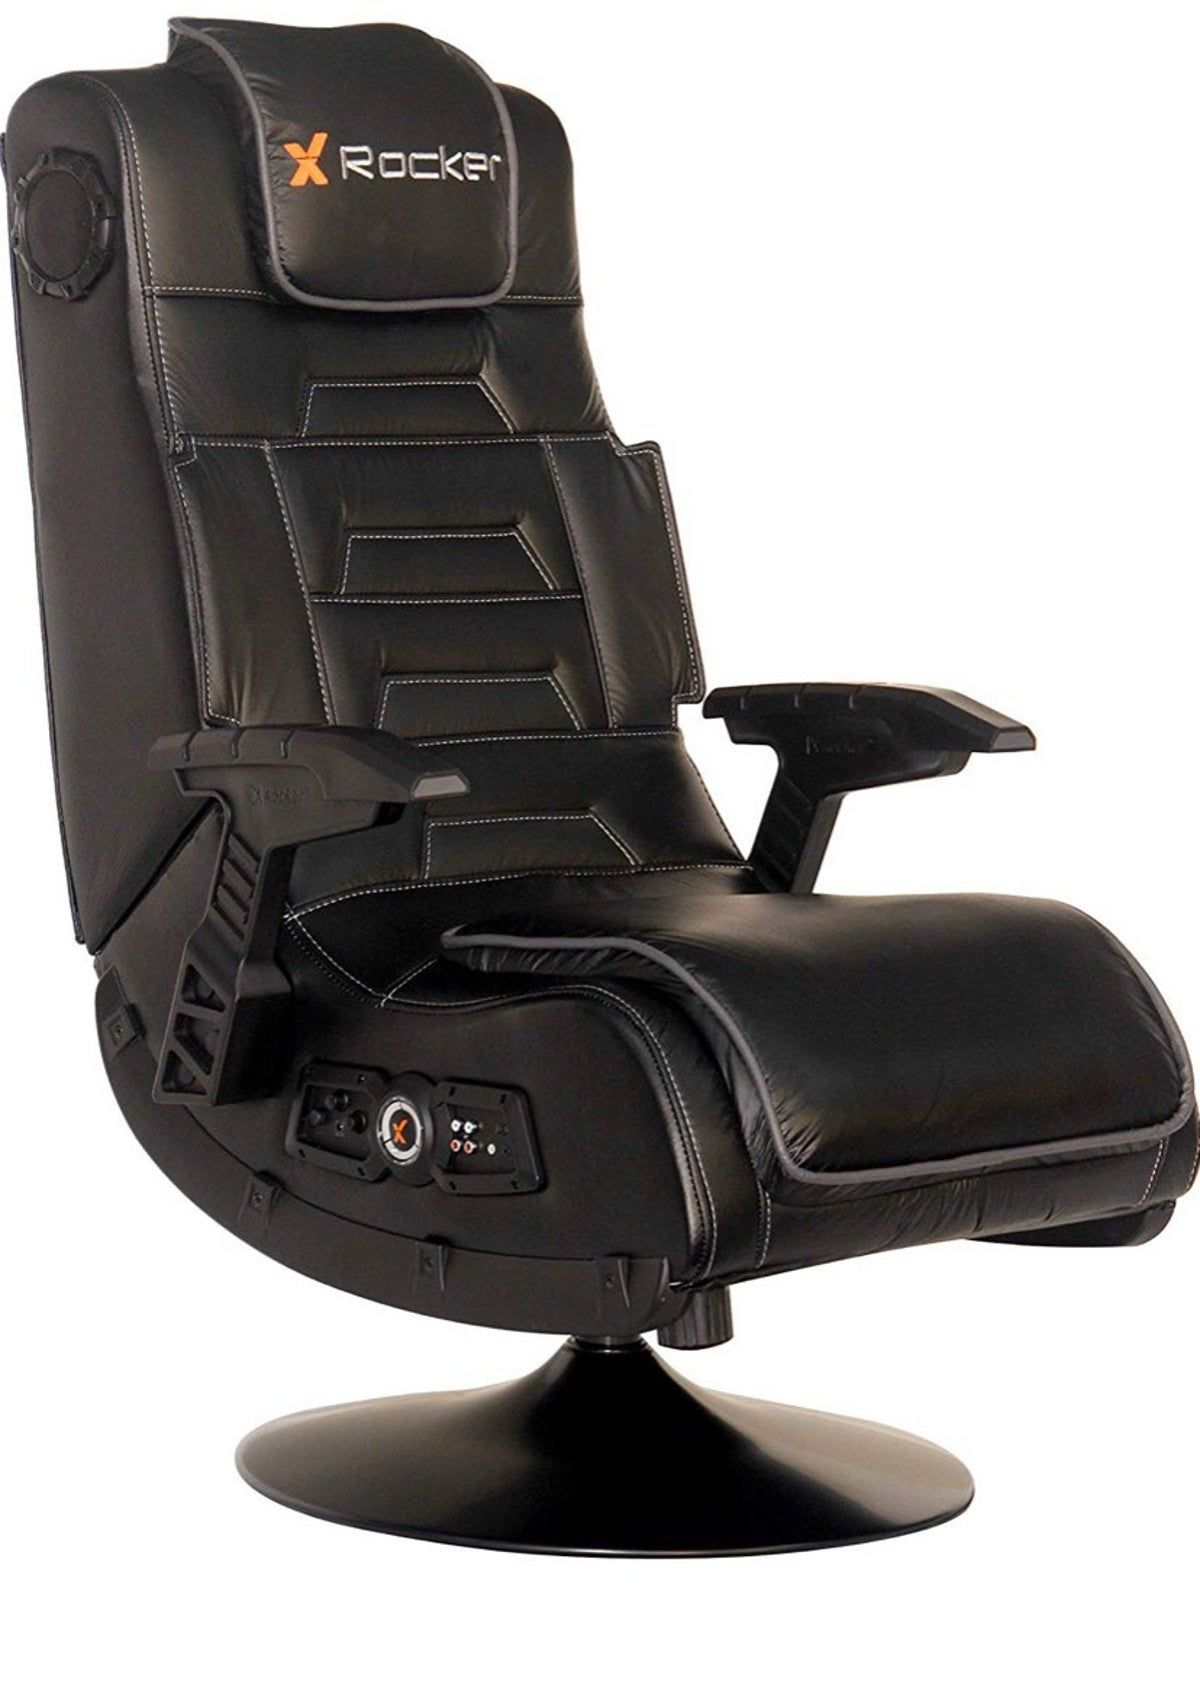 Pedestal 2.1 Video Gaming Chair, Wirele Gaming chair, Pc